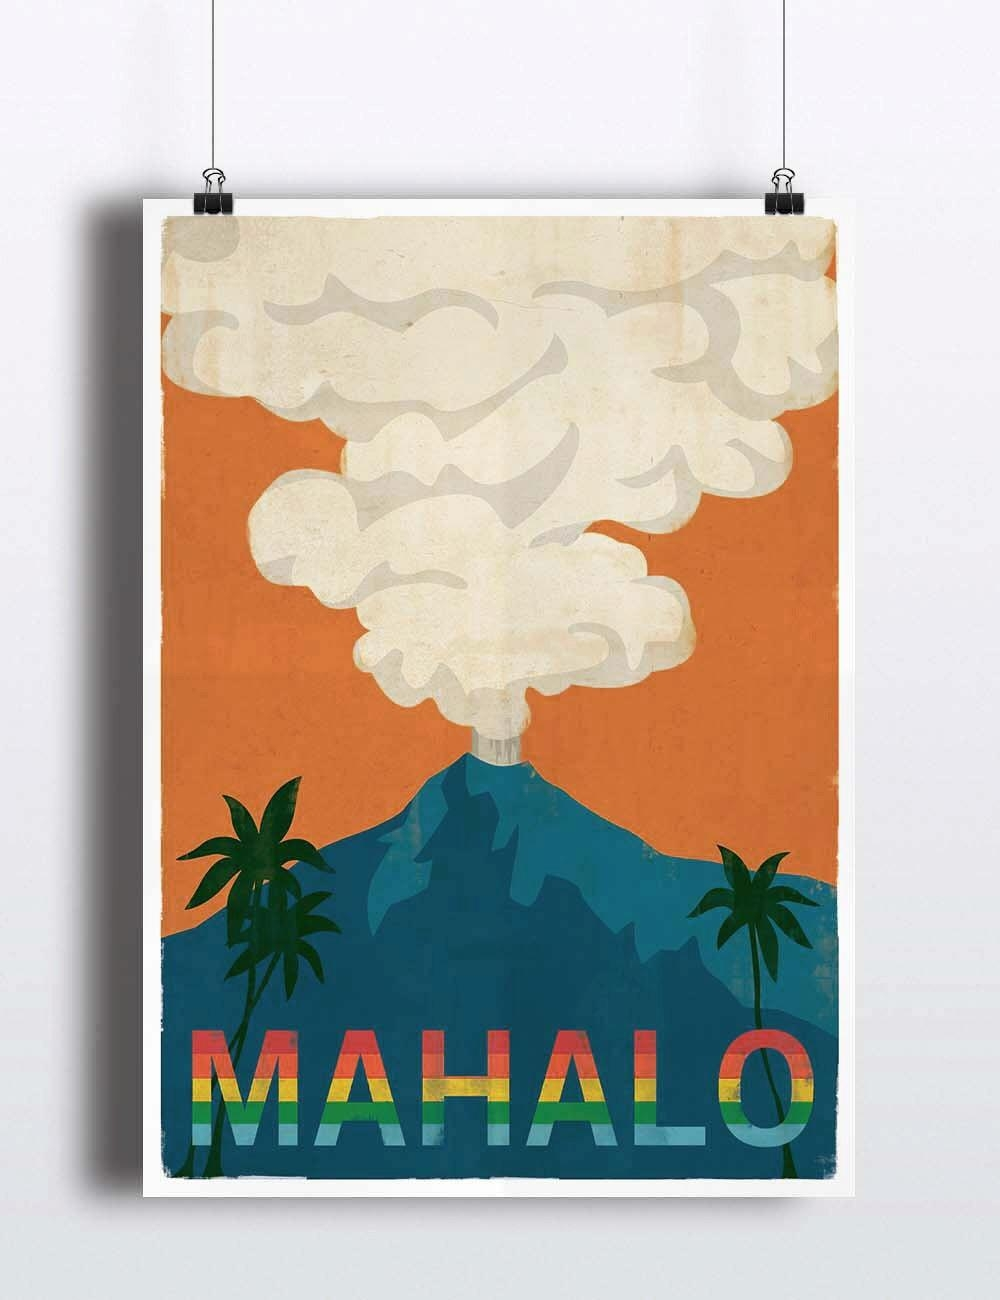 Superb Wooden Hawaiian Islands Wall Art Vintage Hawaii Poster Regarding Hawaiian Islands Wall Art (View 6 of 20)